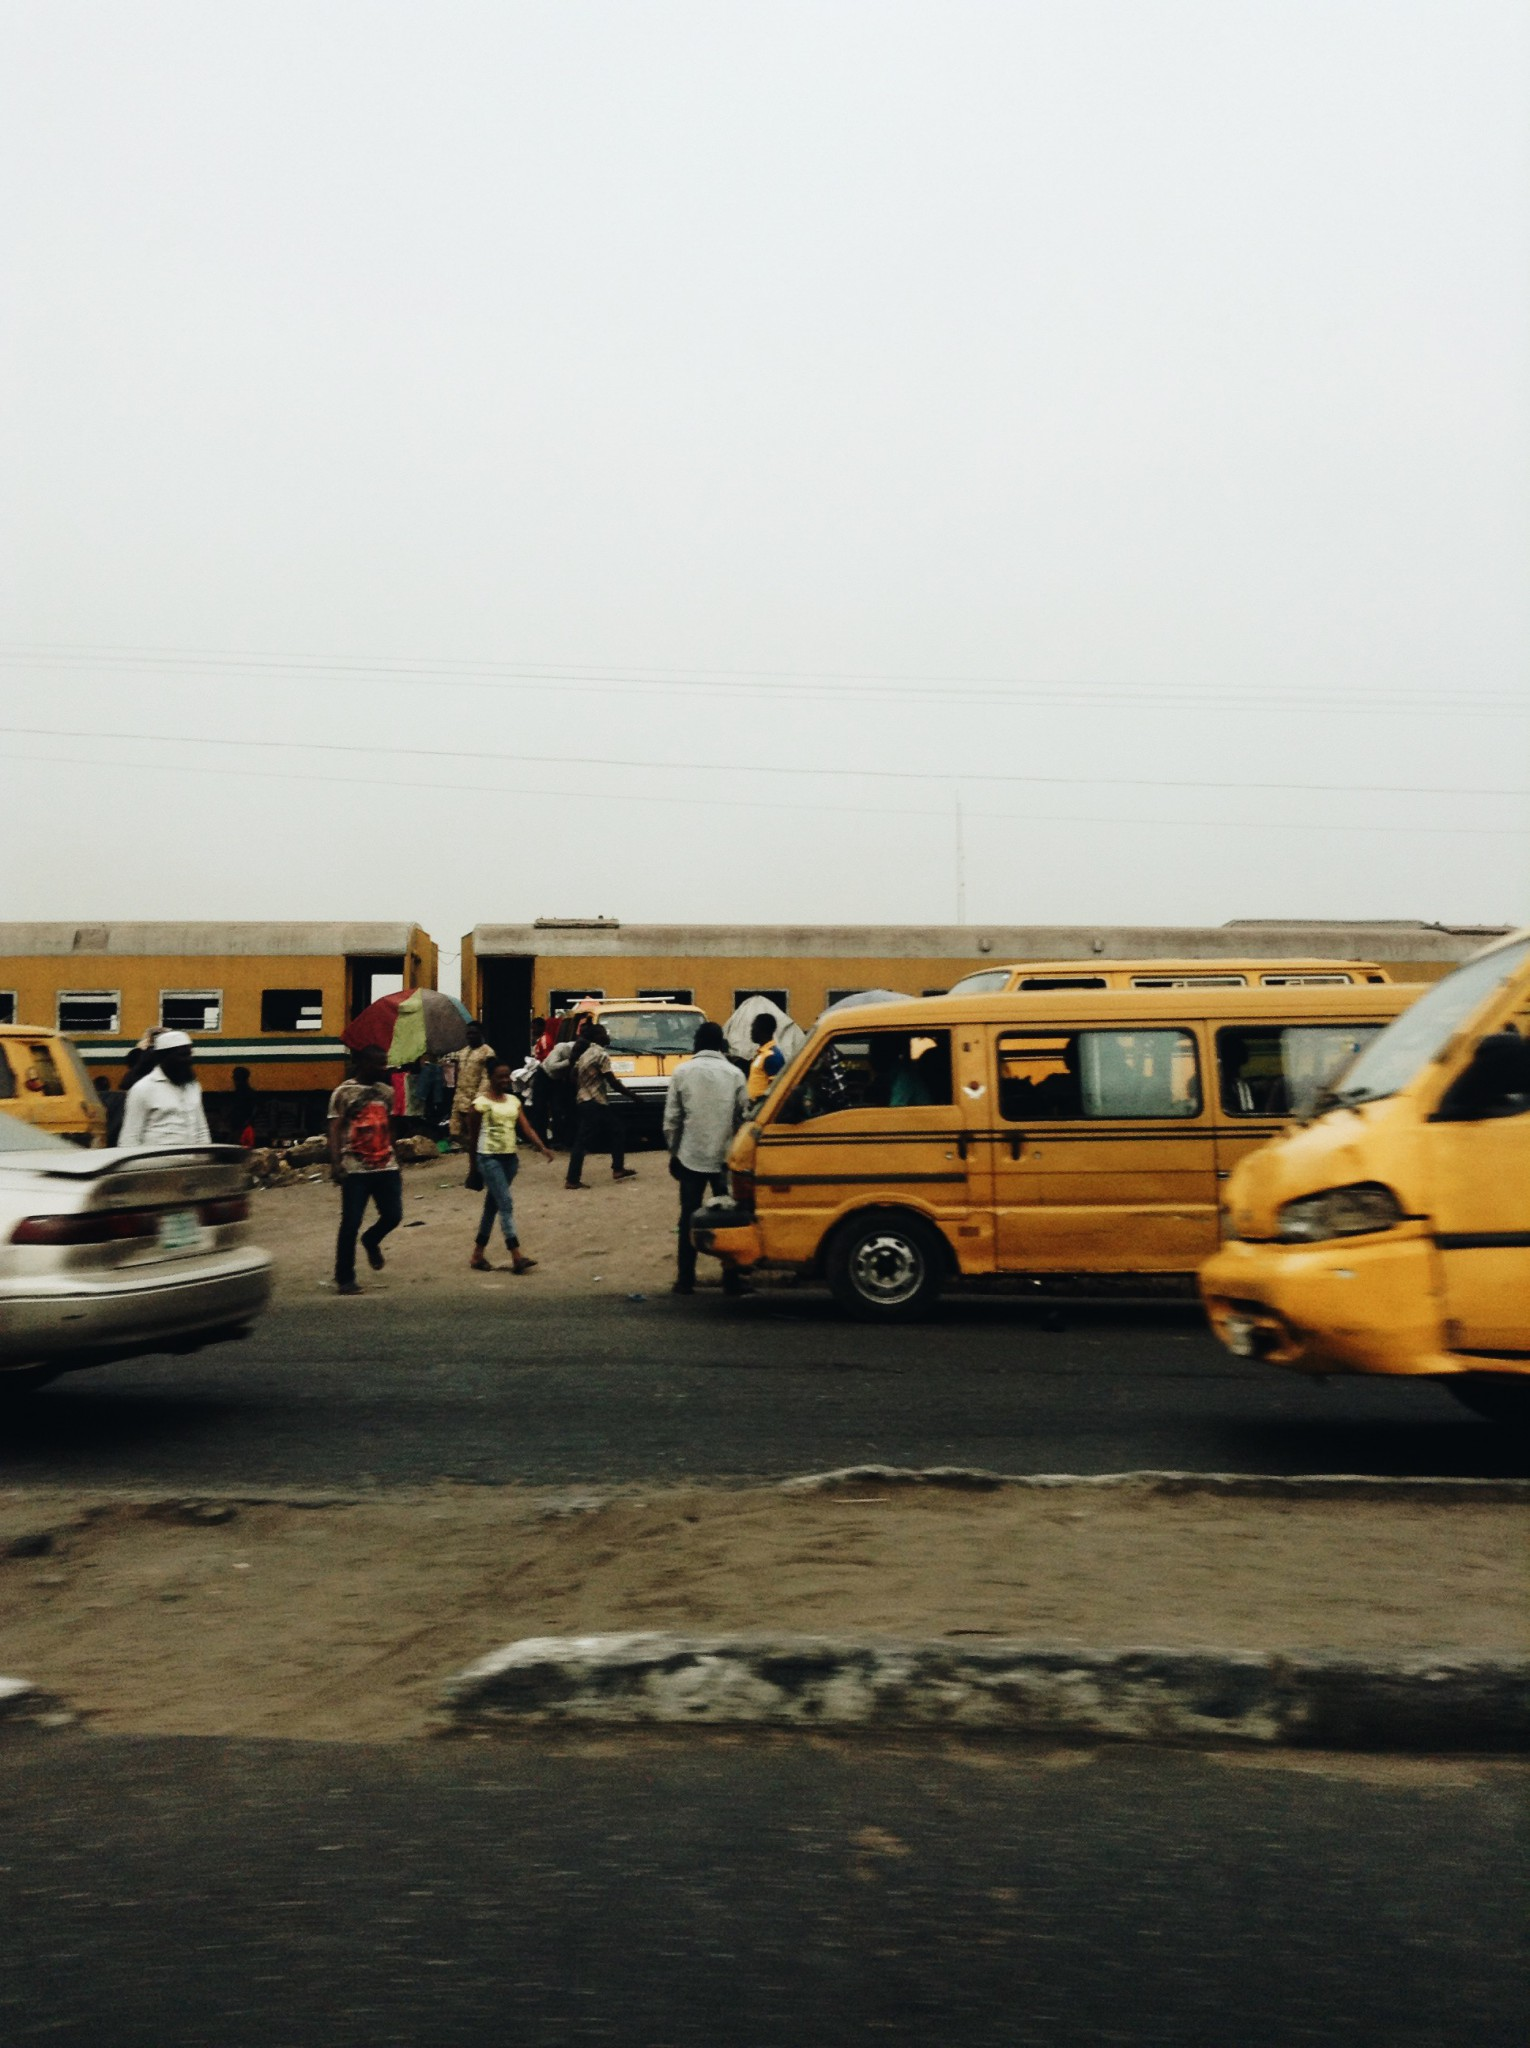 The Lagos tourist and my Arik experience